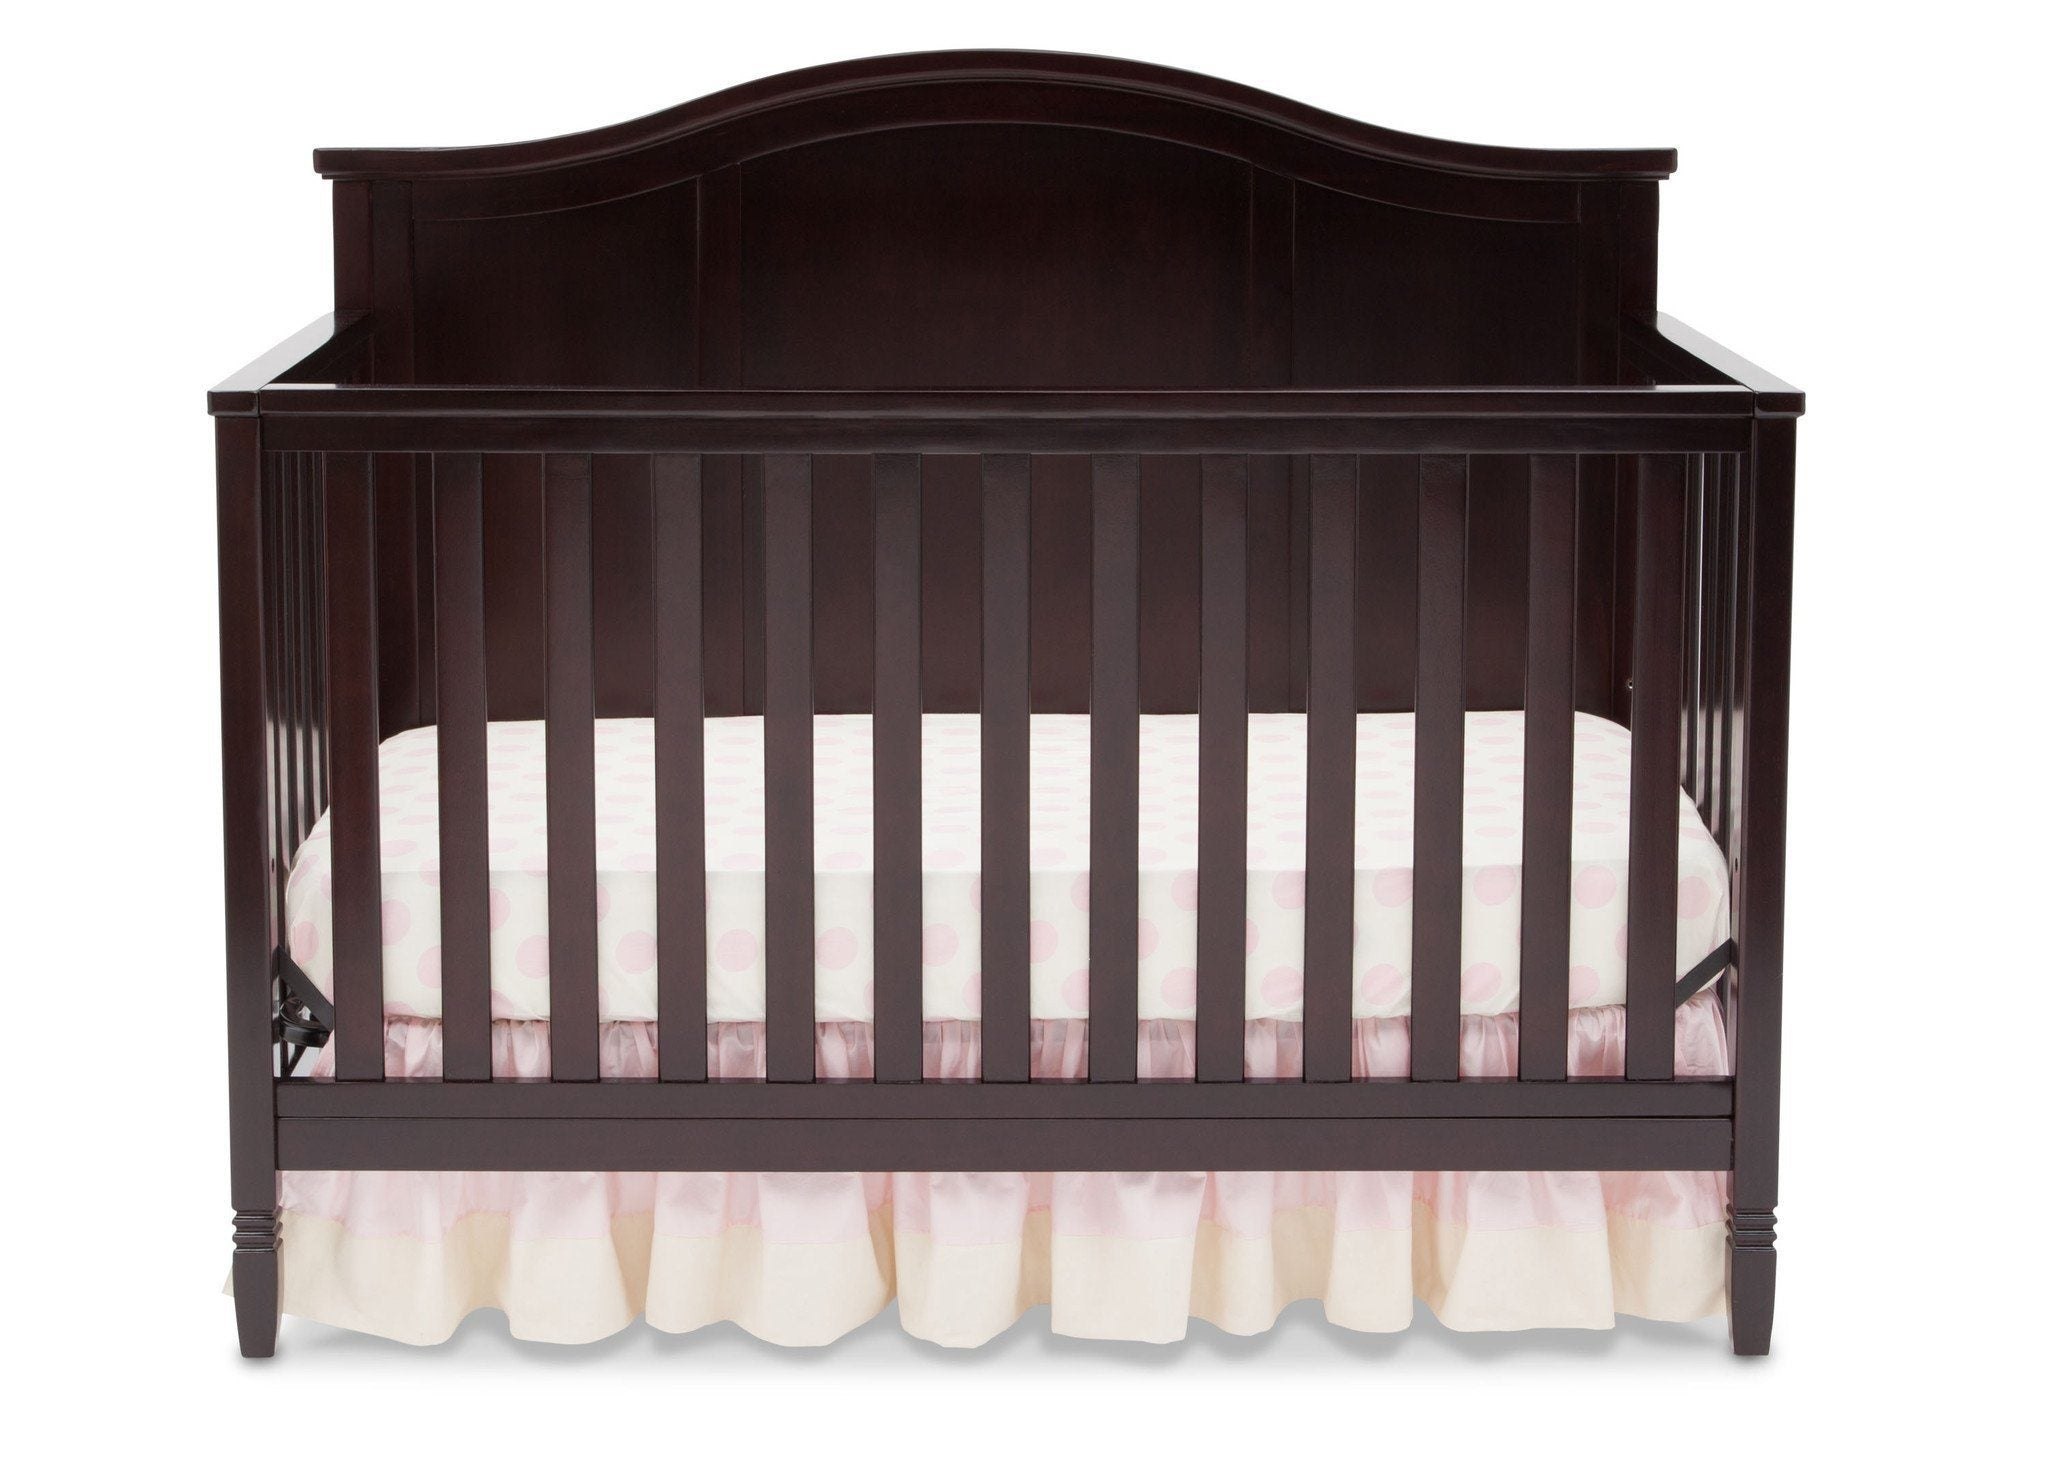 Delta Children Dark Chocolate (207) Madrid 4-in-1 Crib, Front Crib Silo View